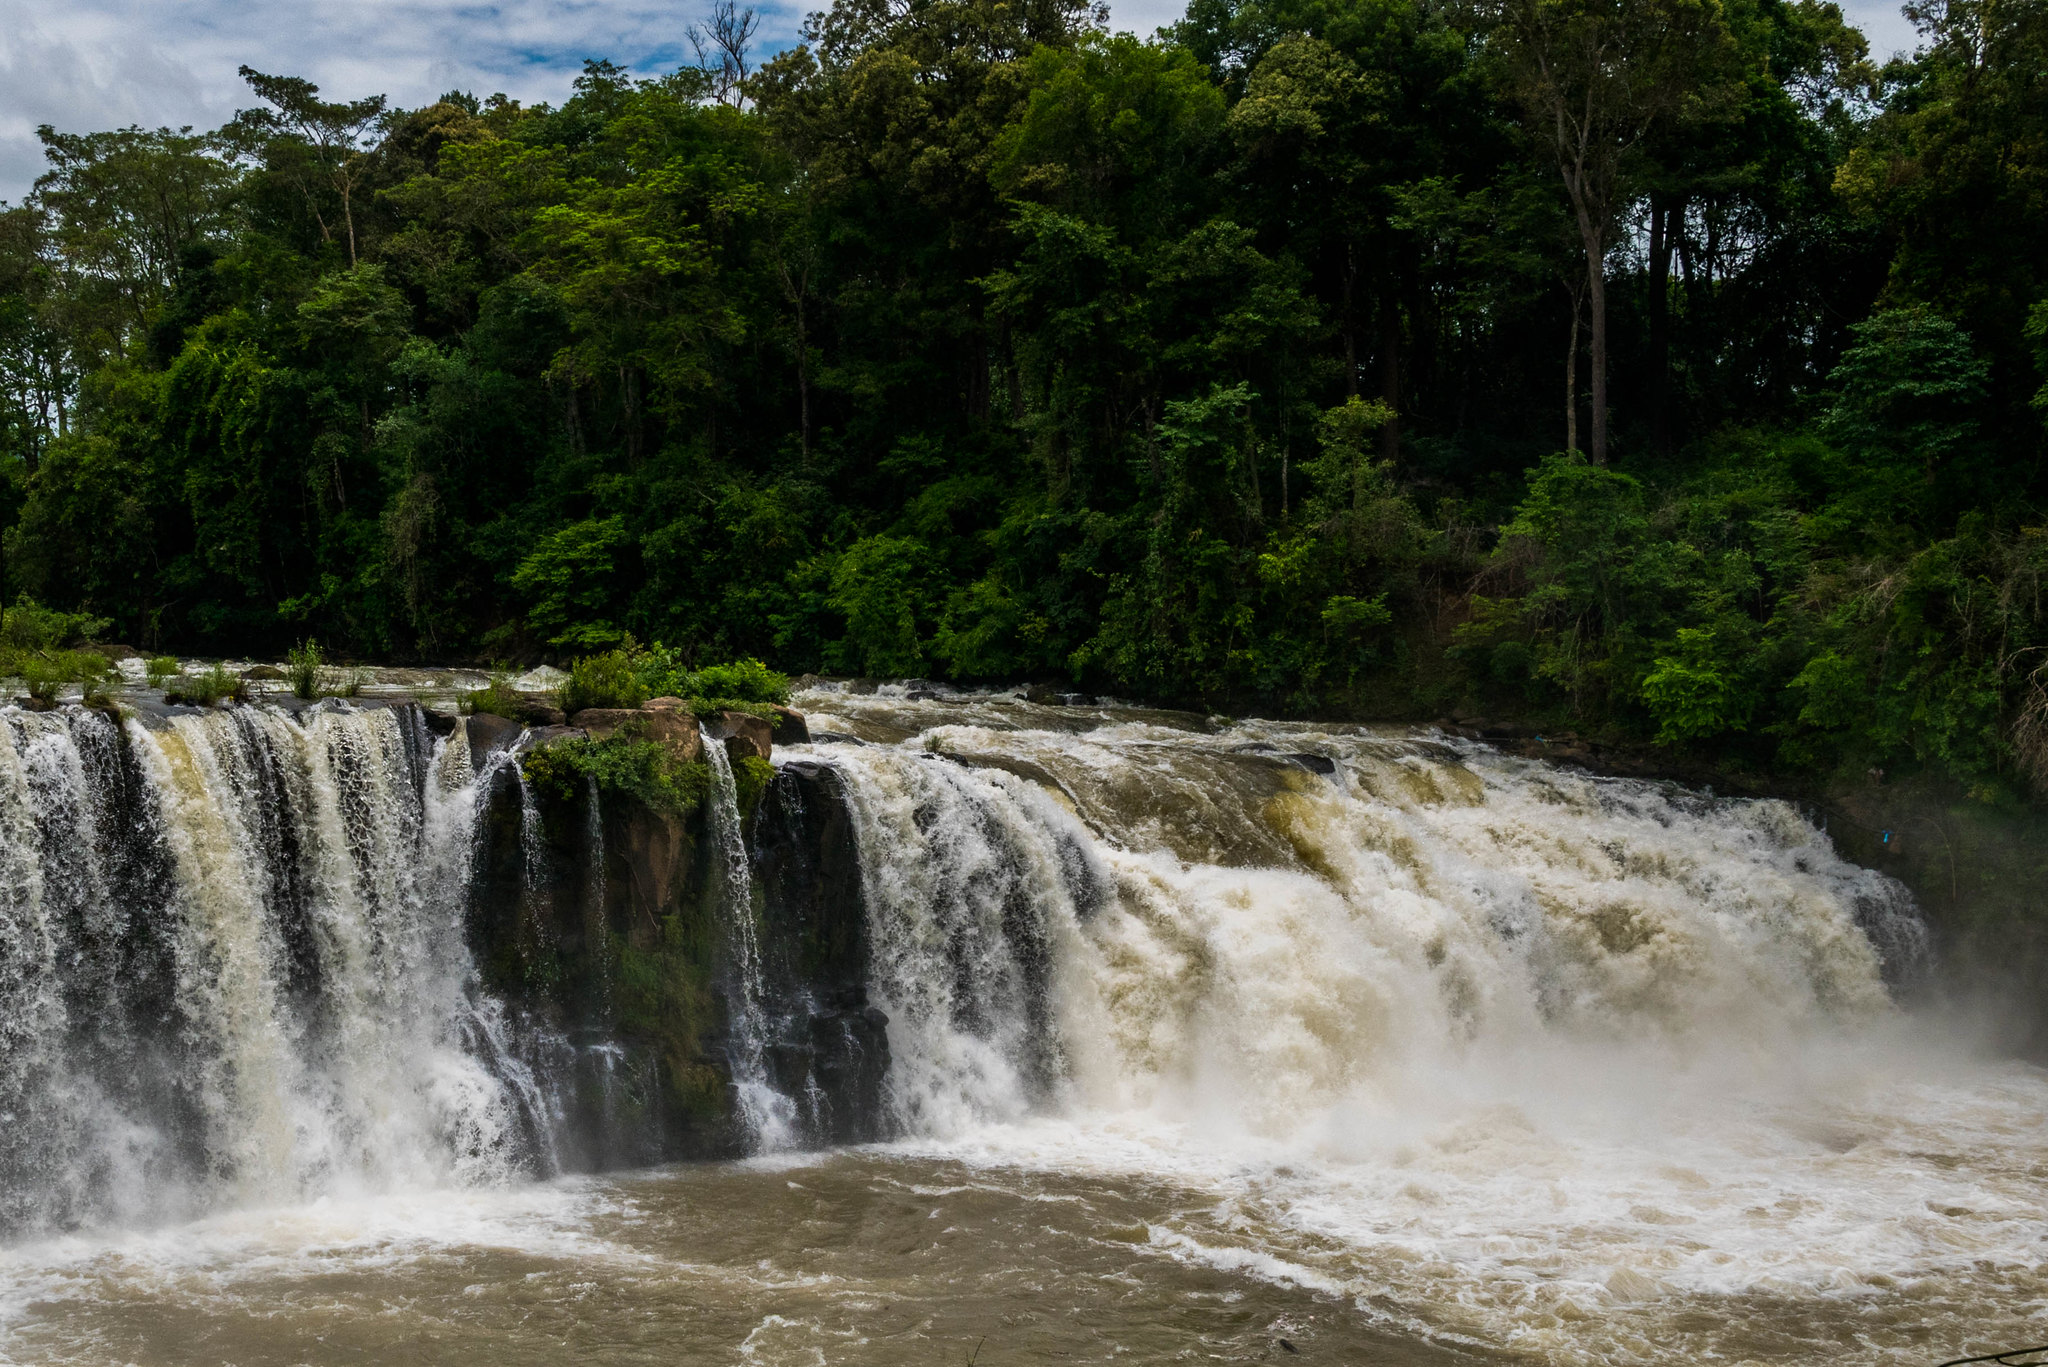 Other waterfalls of Bolaven plateau